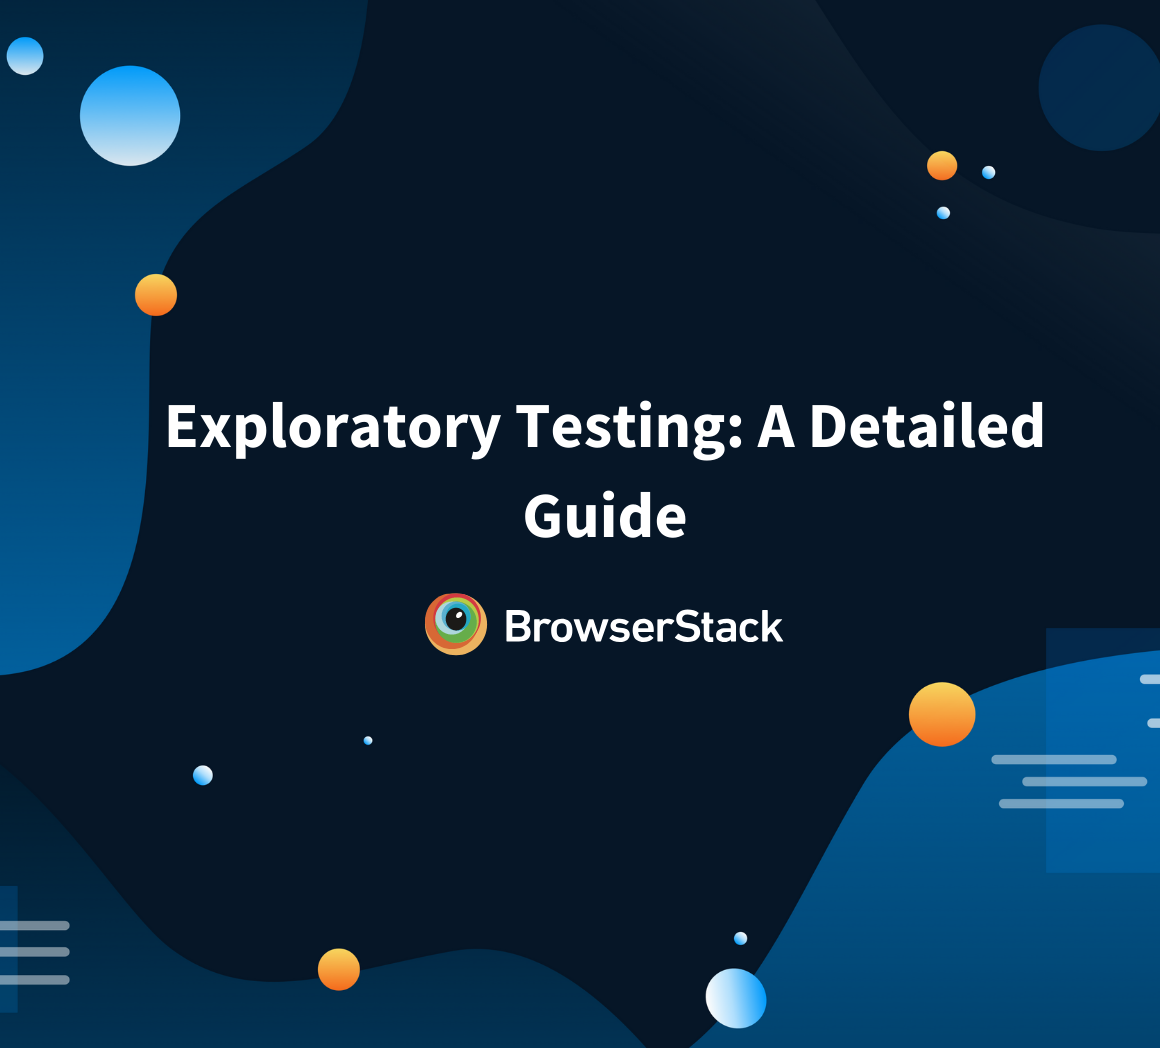 Exploratory Testing: A Detailed Guide